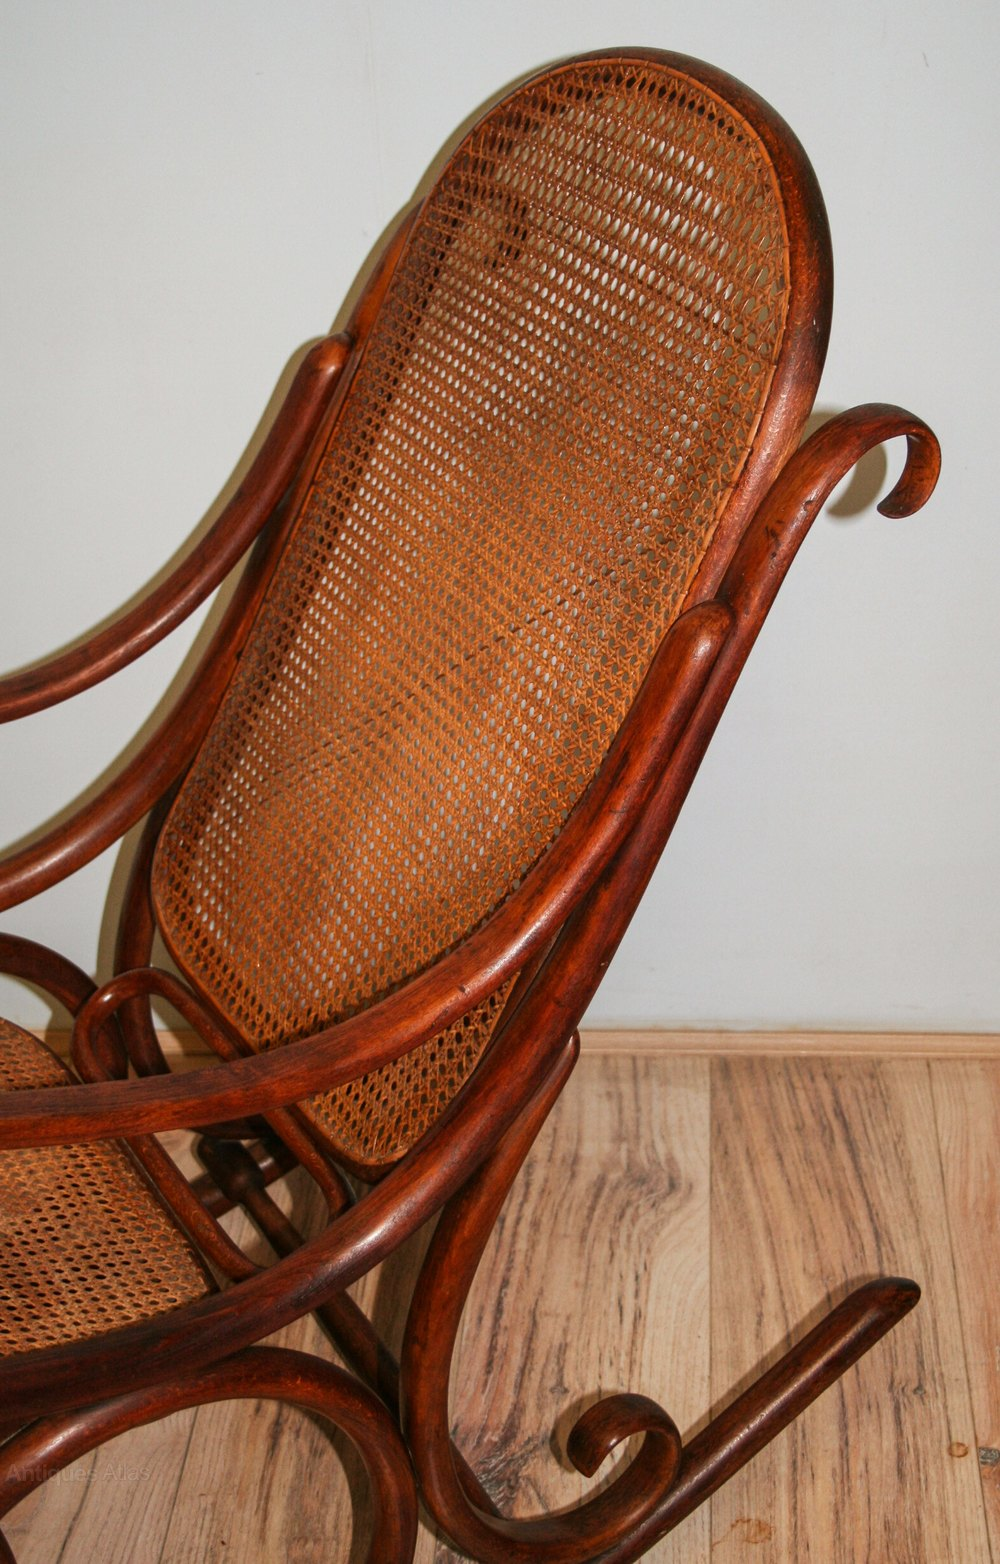 this elegant bentwood rocking chair dates to around 1900 and is